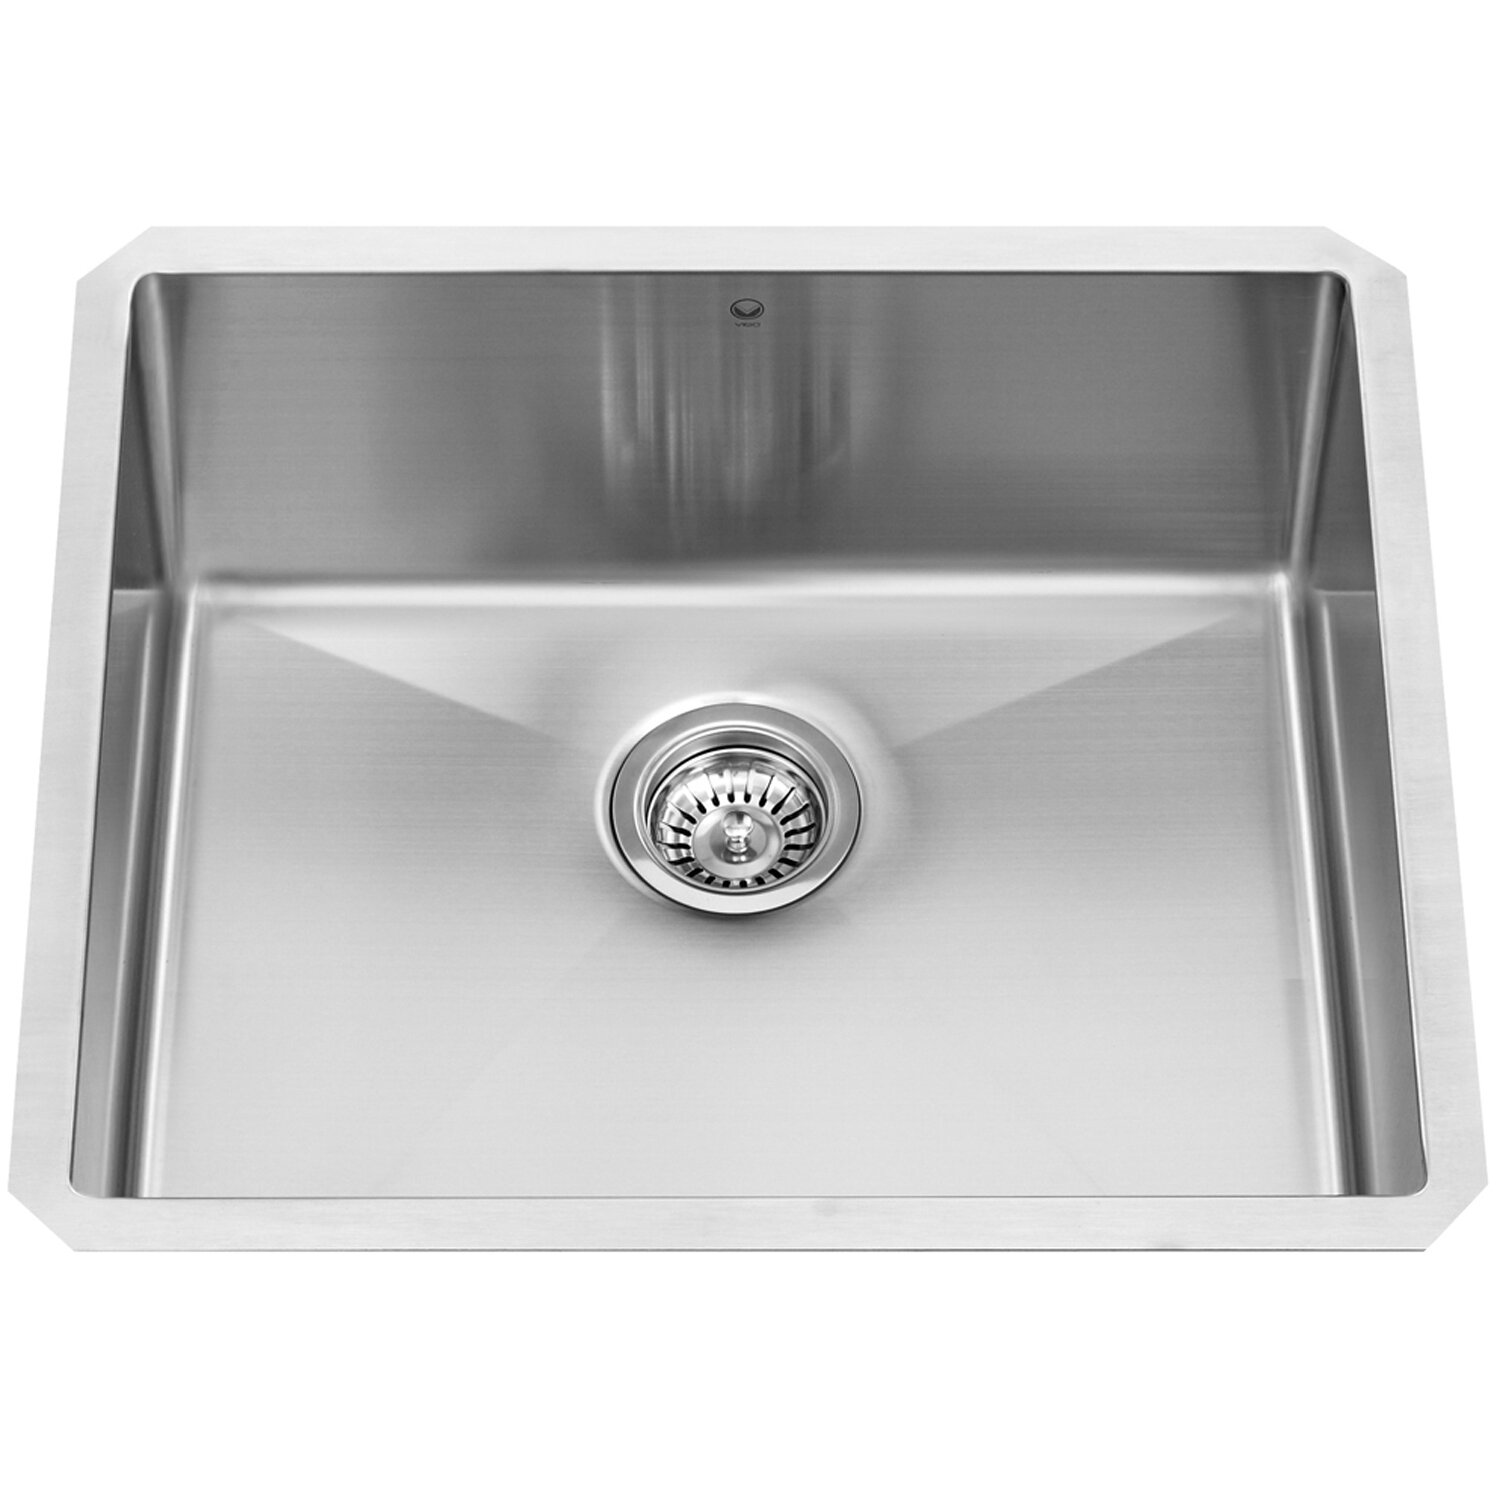 White Kitchen Sink Undermount Vigo Stainless Steel Single Bowl 23 X 20 Undermount Kitchen Sink